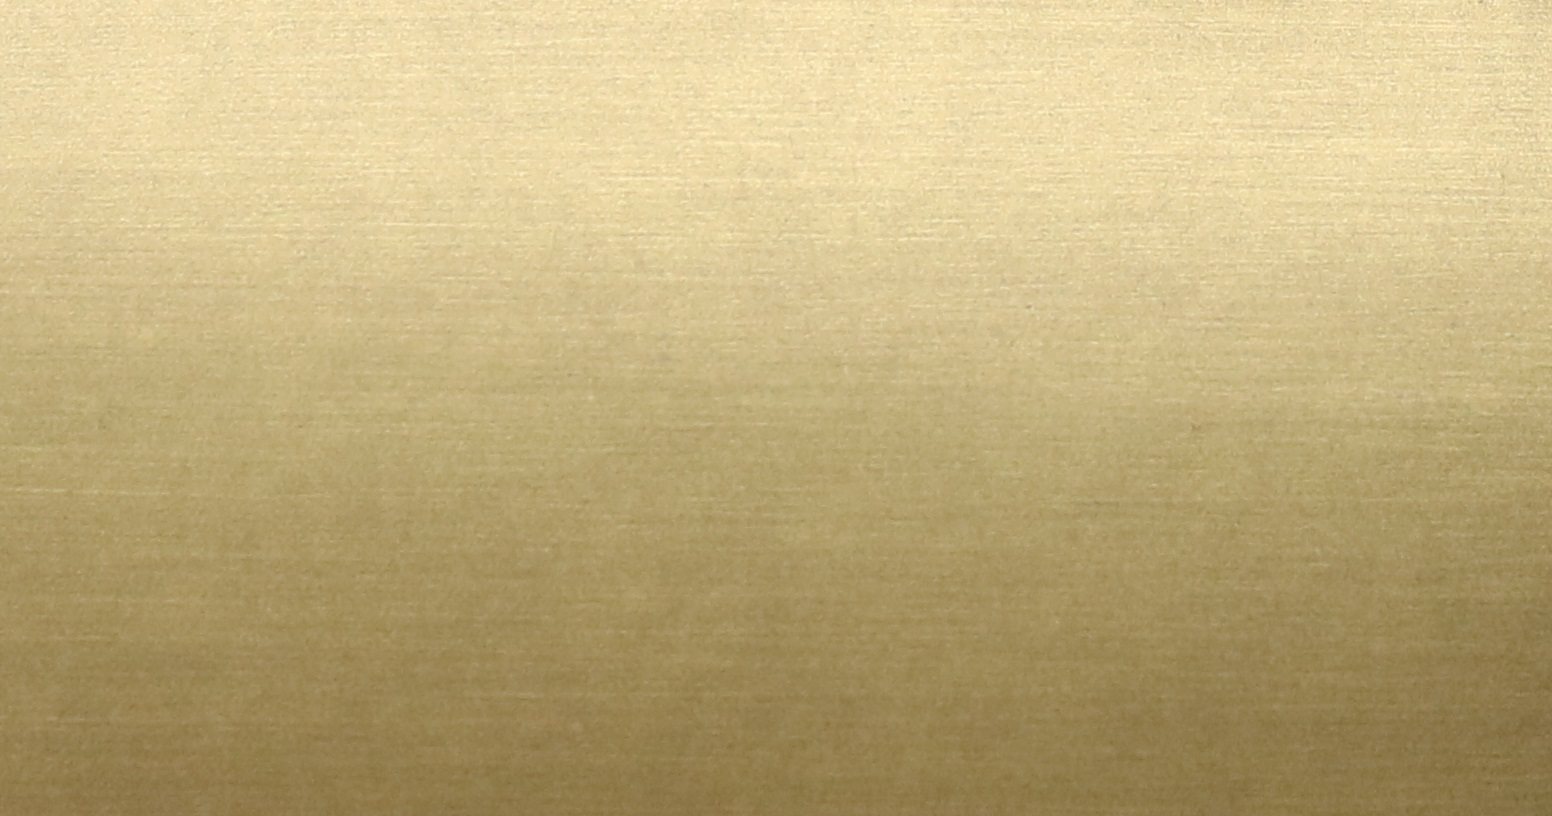 81012C-anodized-brushed-metals-effect-paint-1